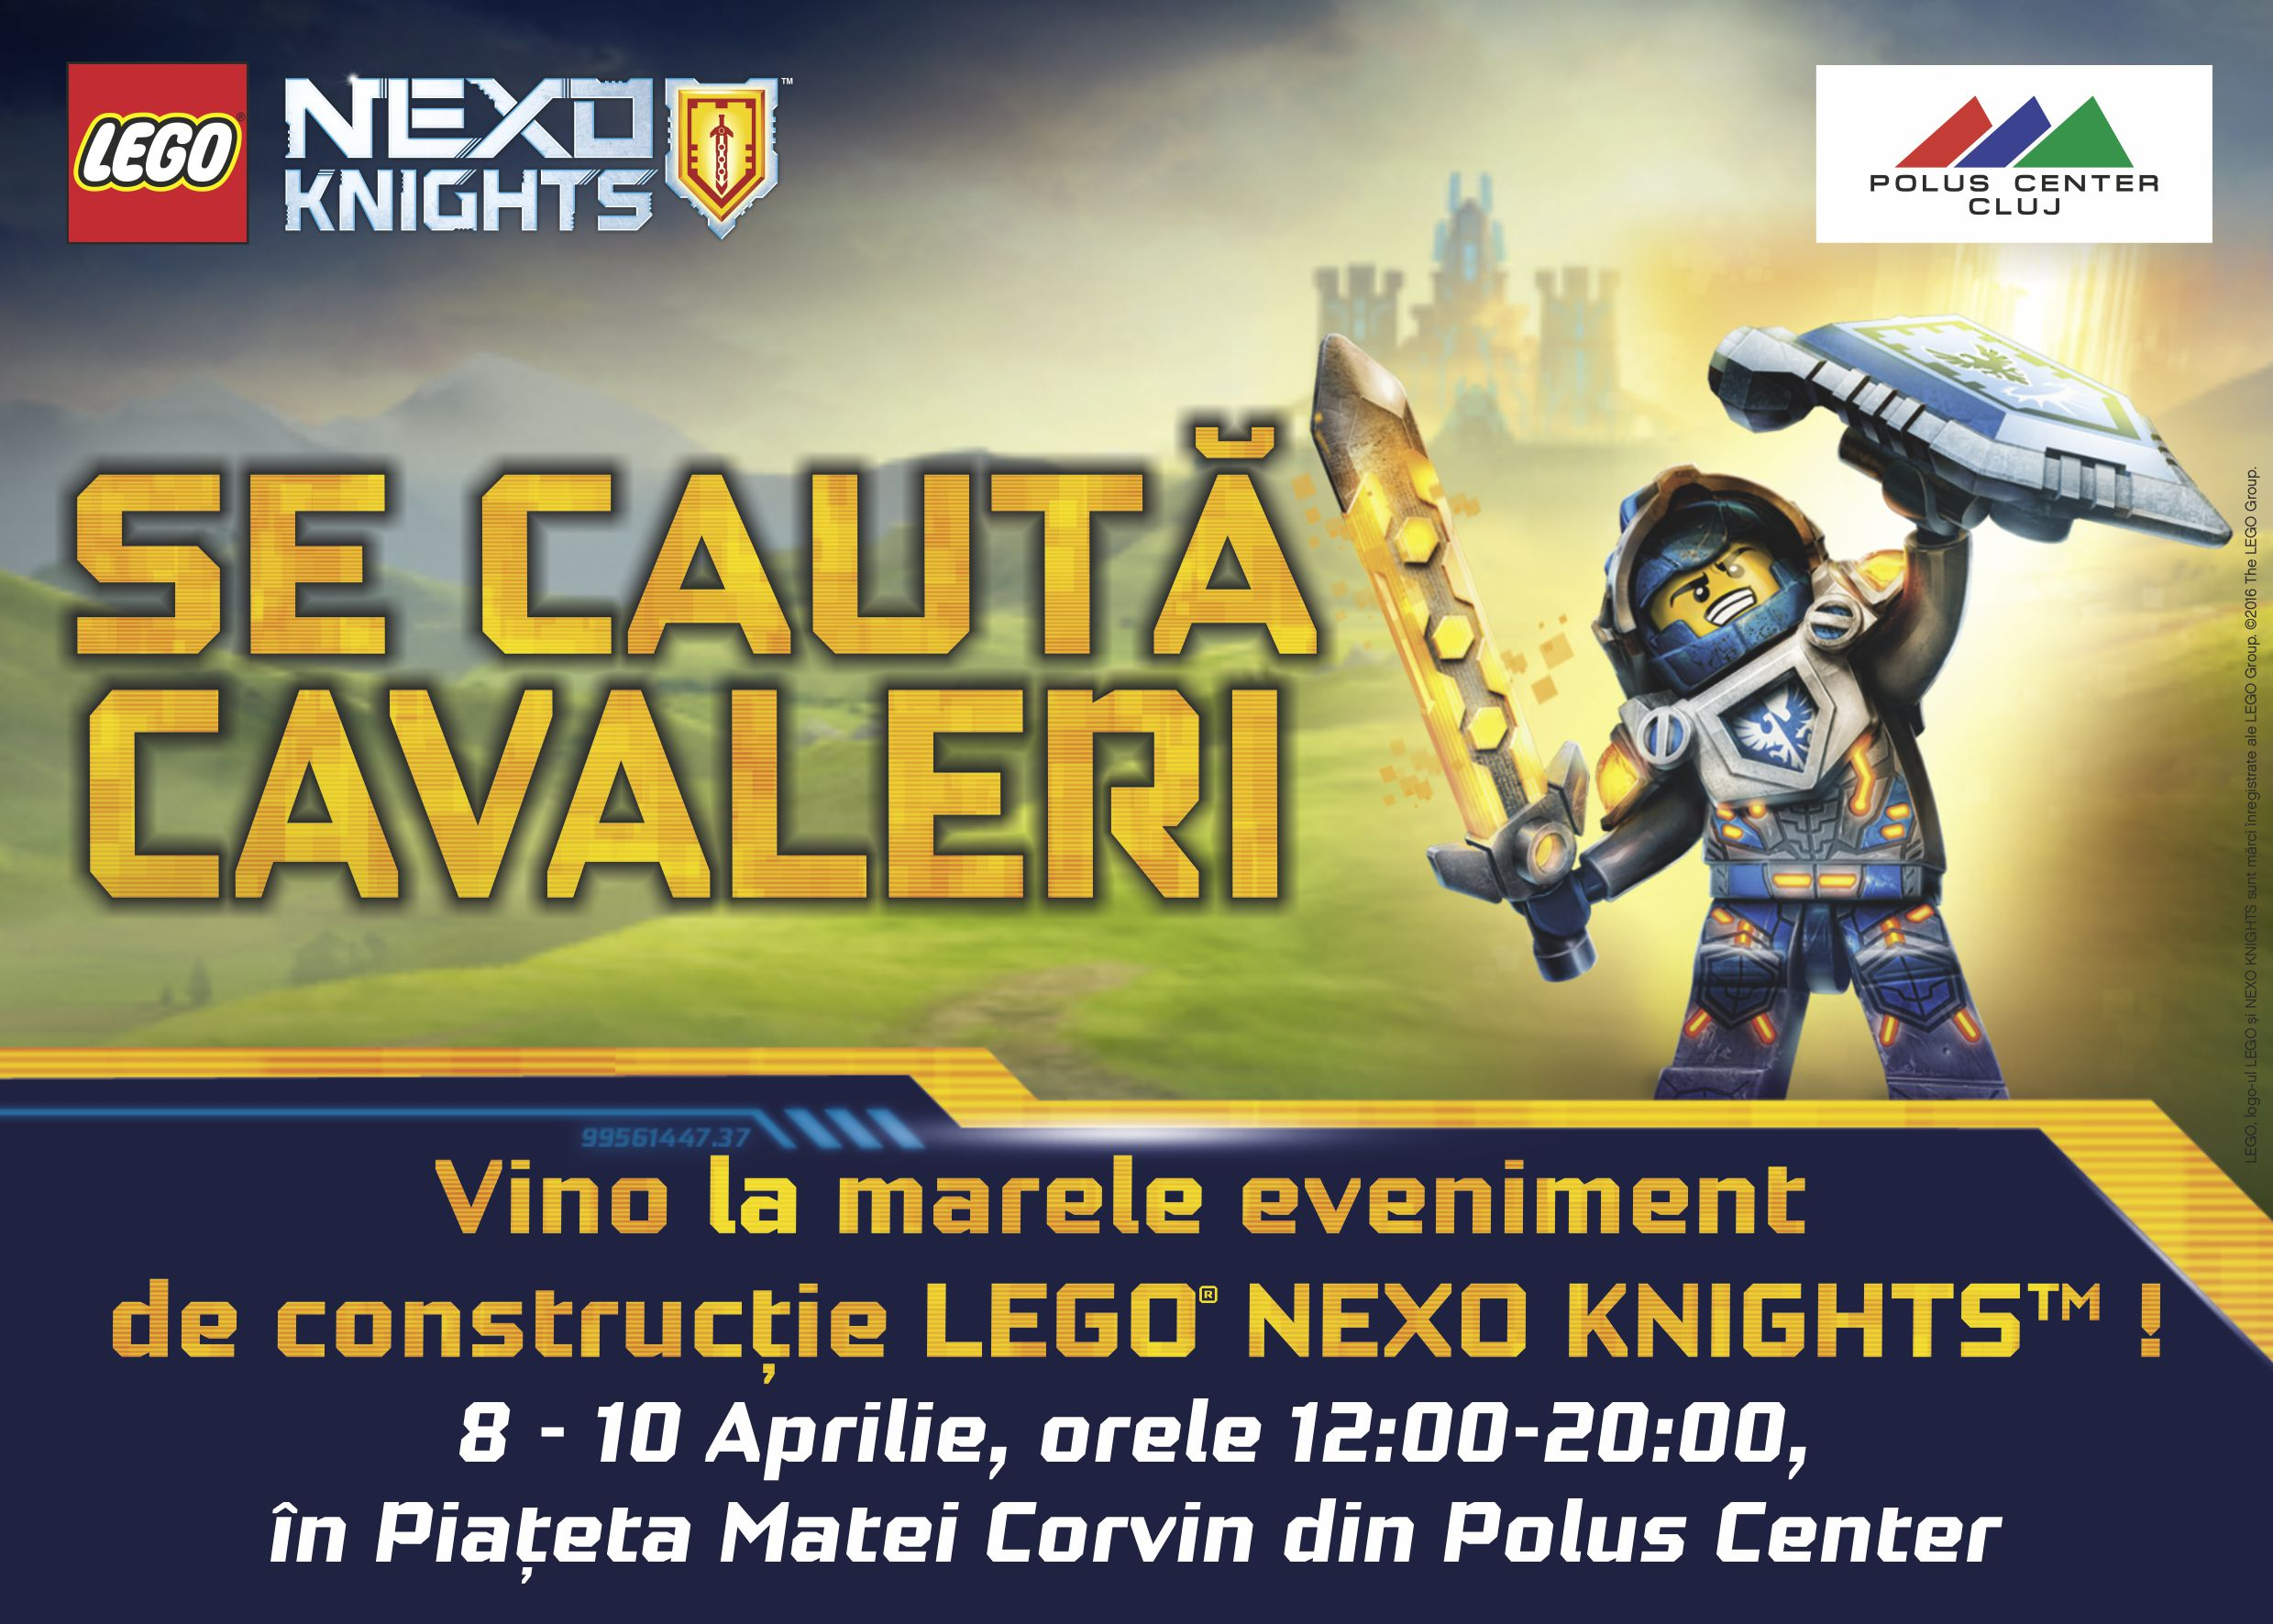 Copiii sunt invitati in weekend la Polus Center, la evenimentul LEGO® Nexo Knights (P)